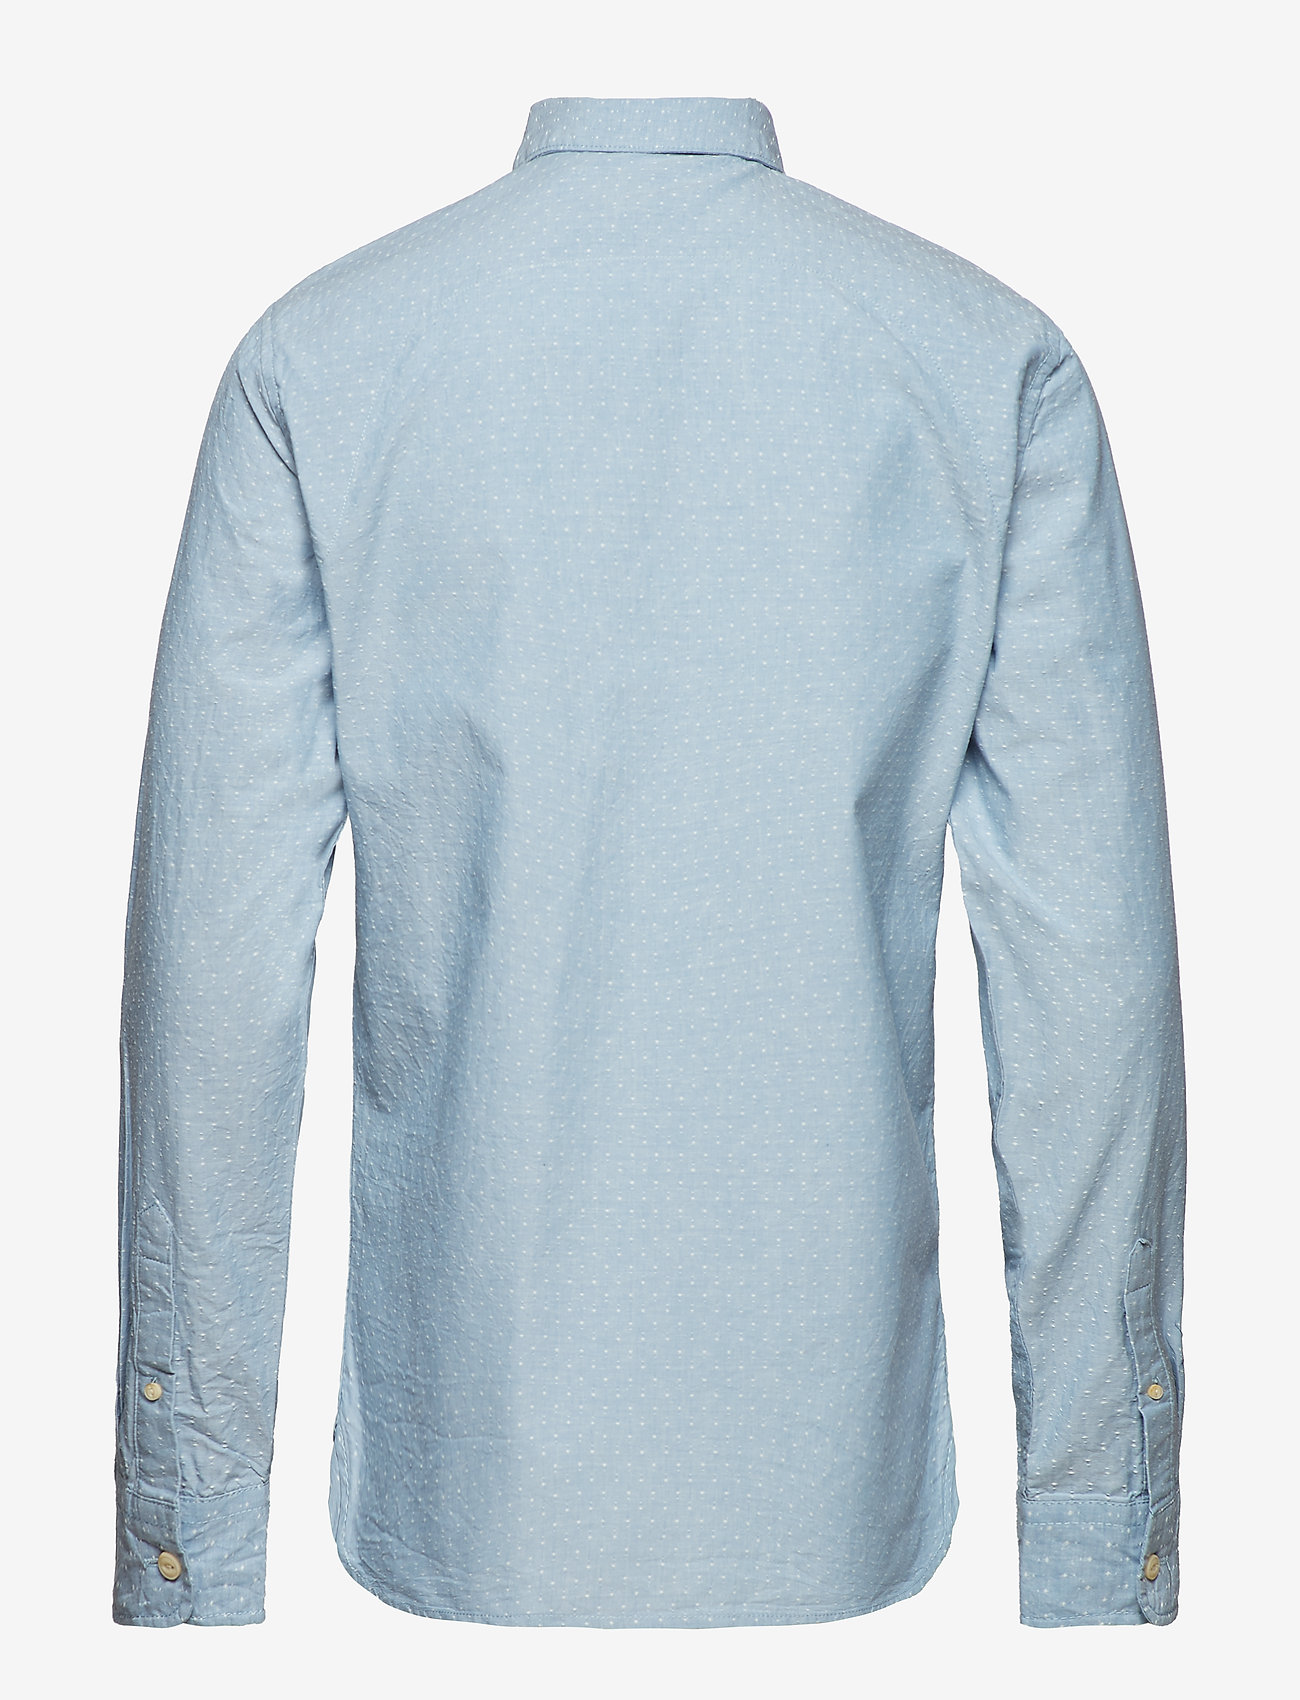 Blend - Shirt - business shirts - soft blue